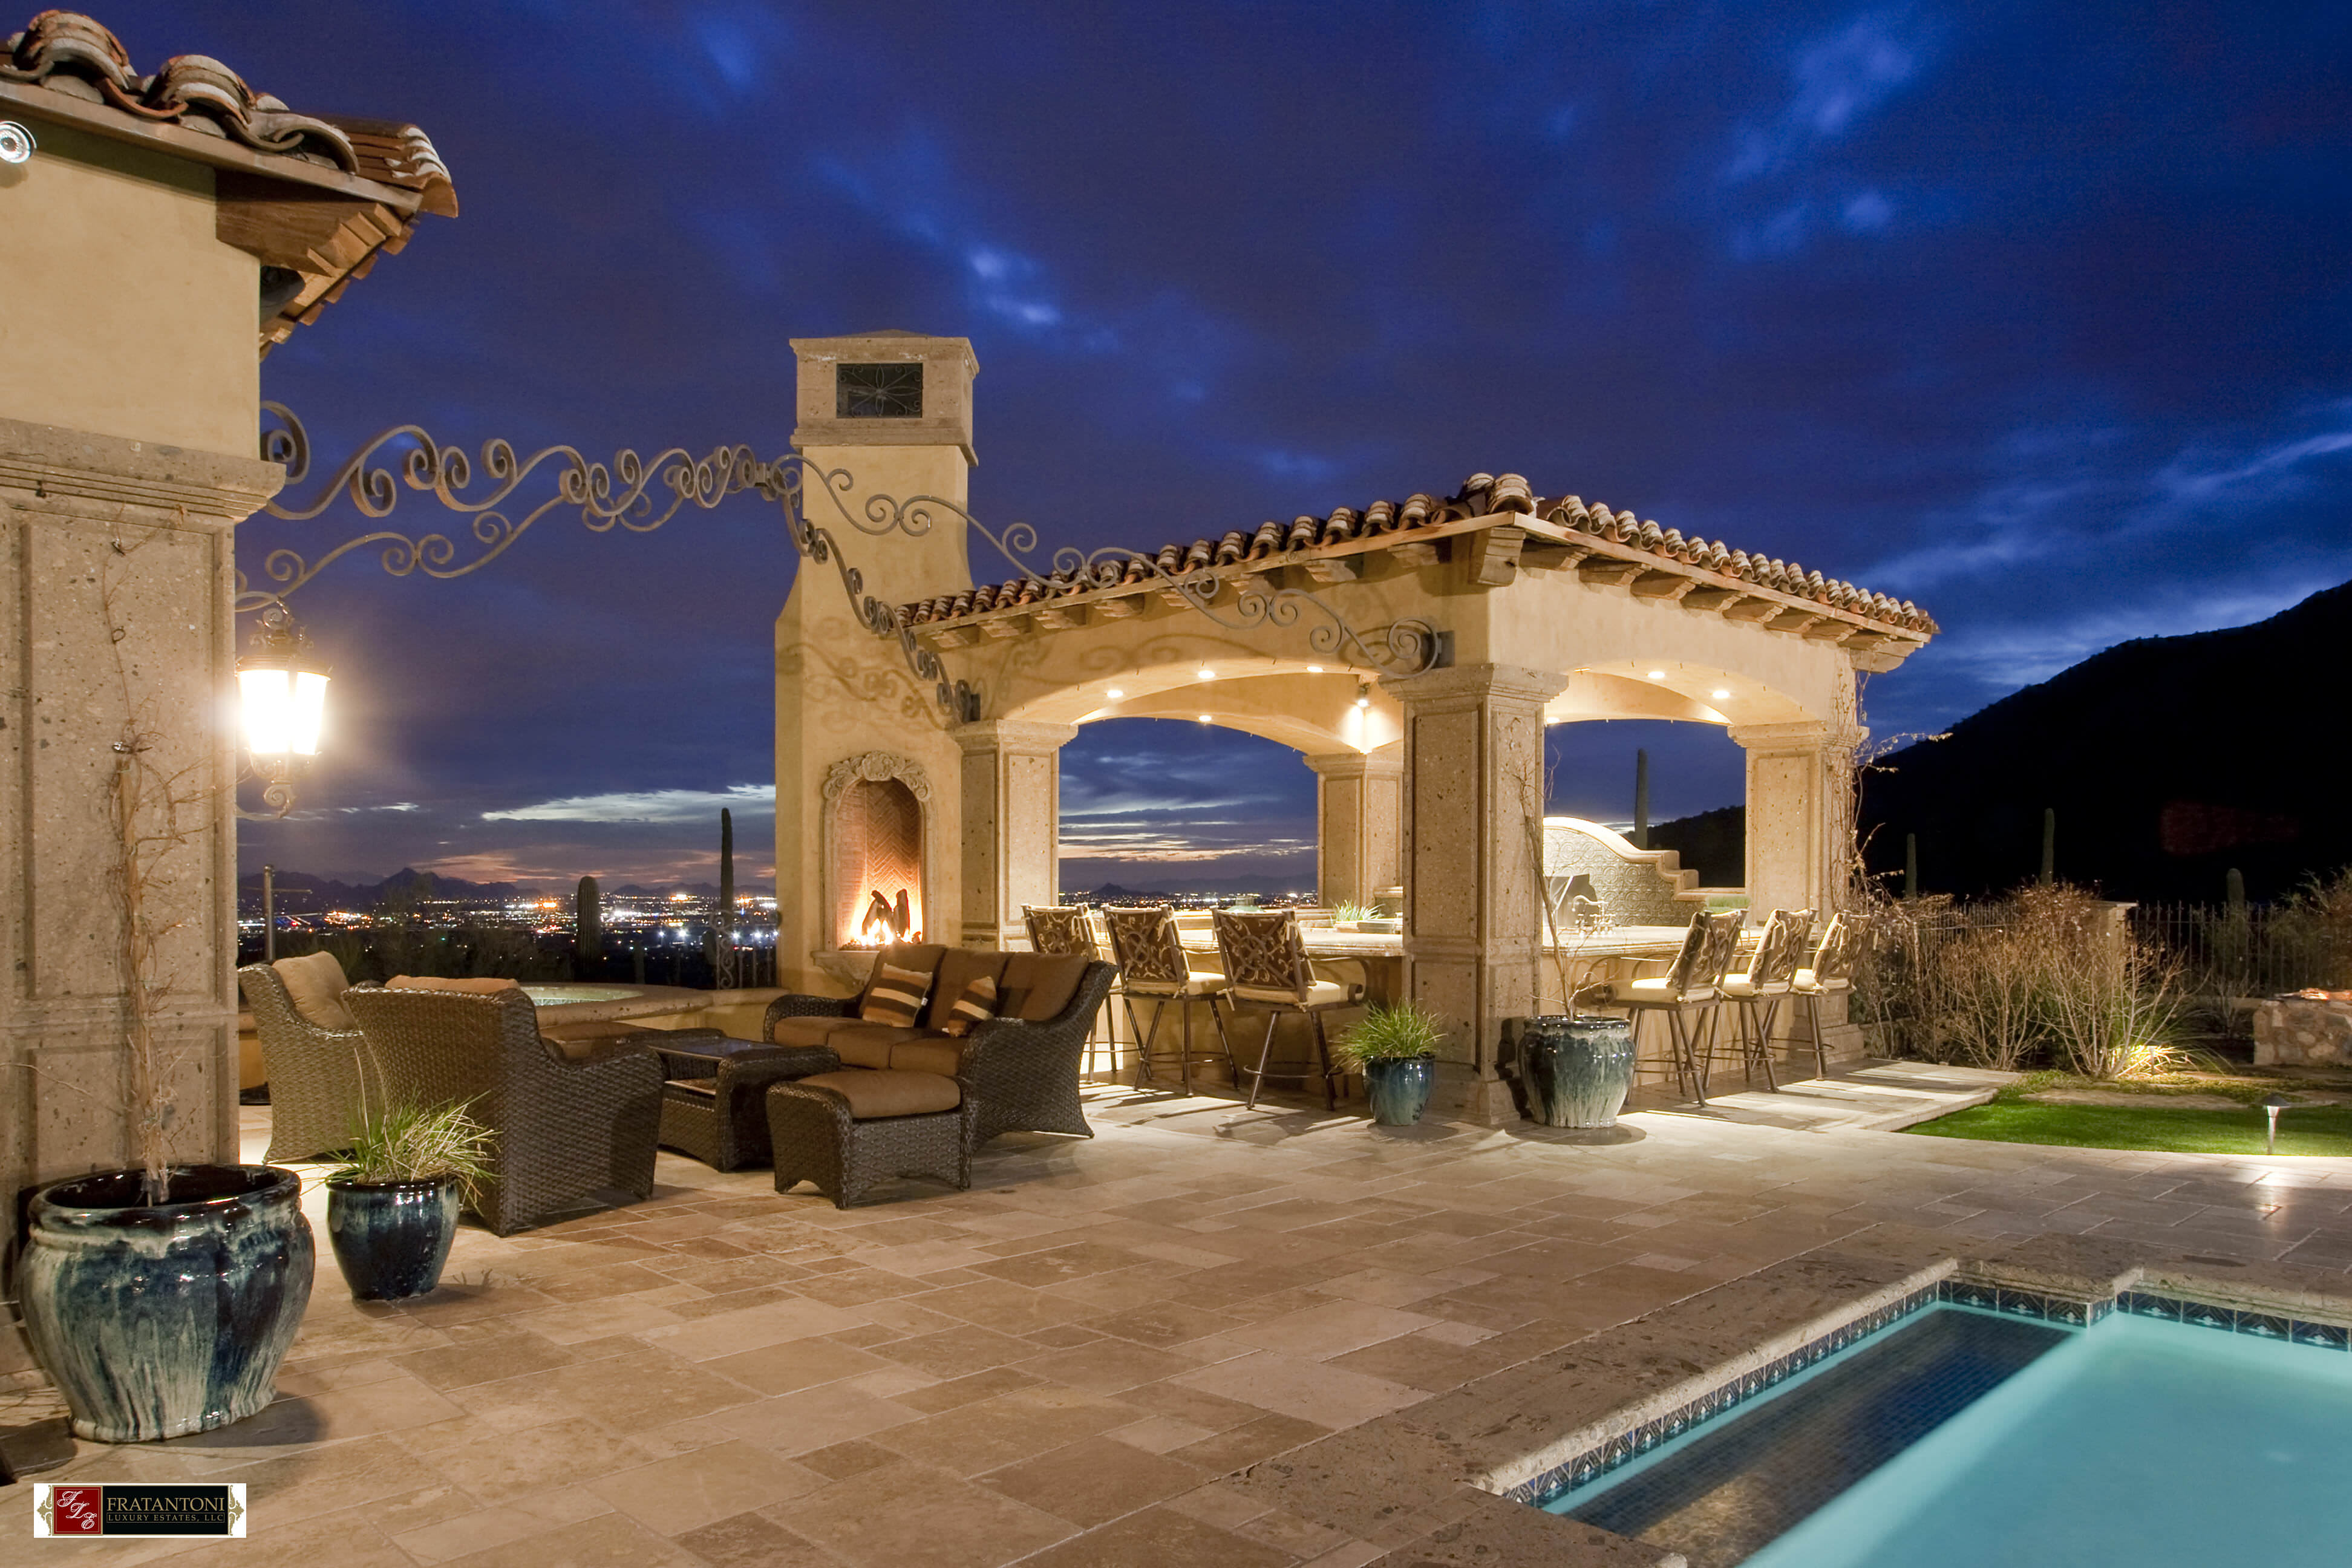 1B-European-Ramada-with-Stone-Columns-and-Awesome-Fireplace